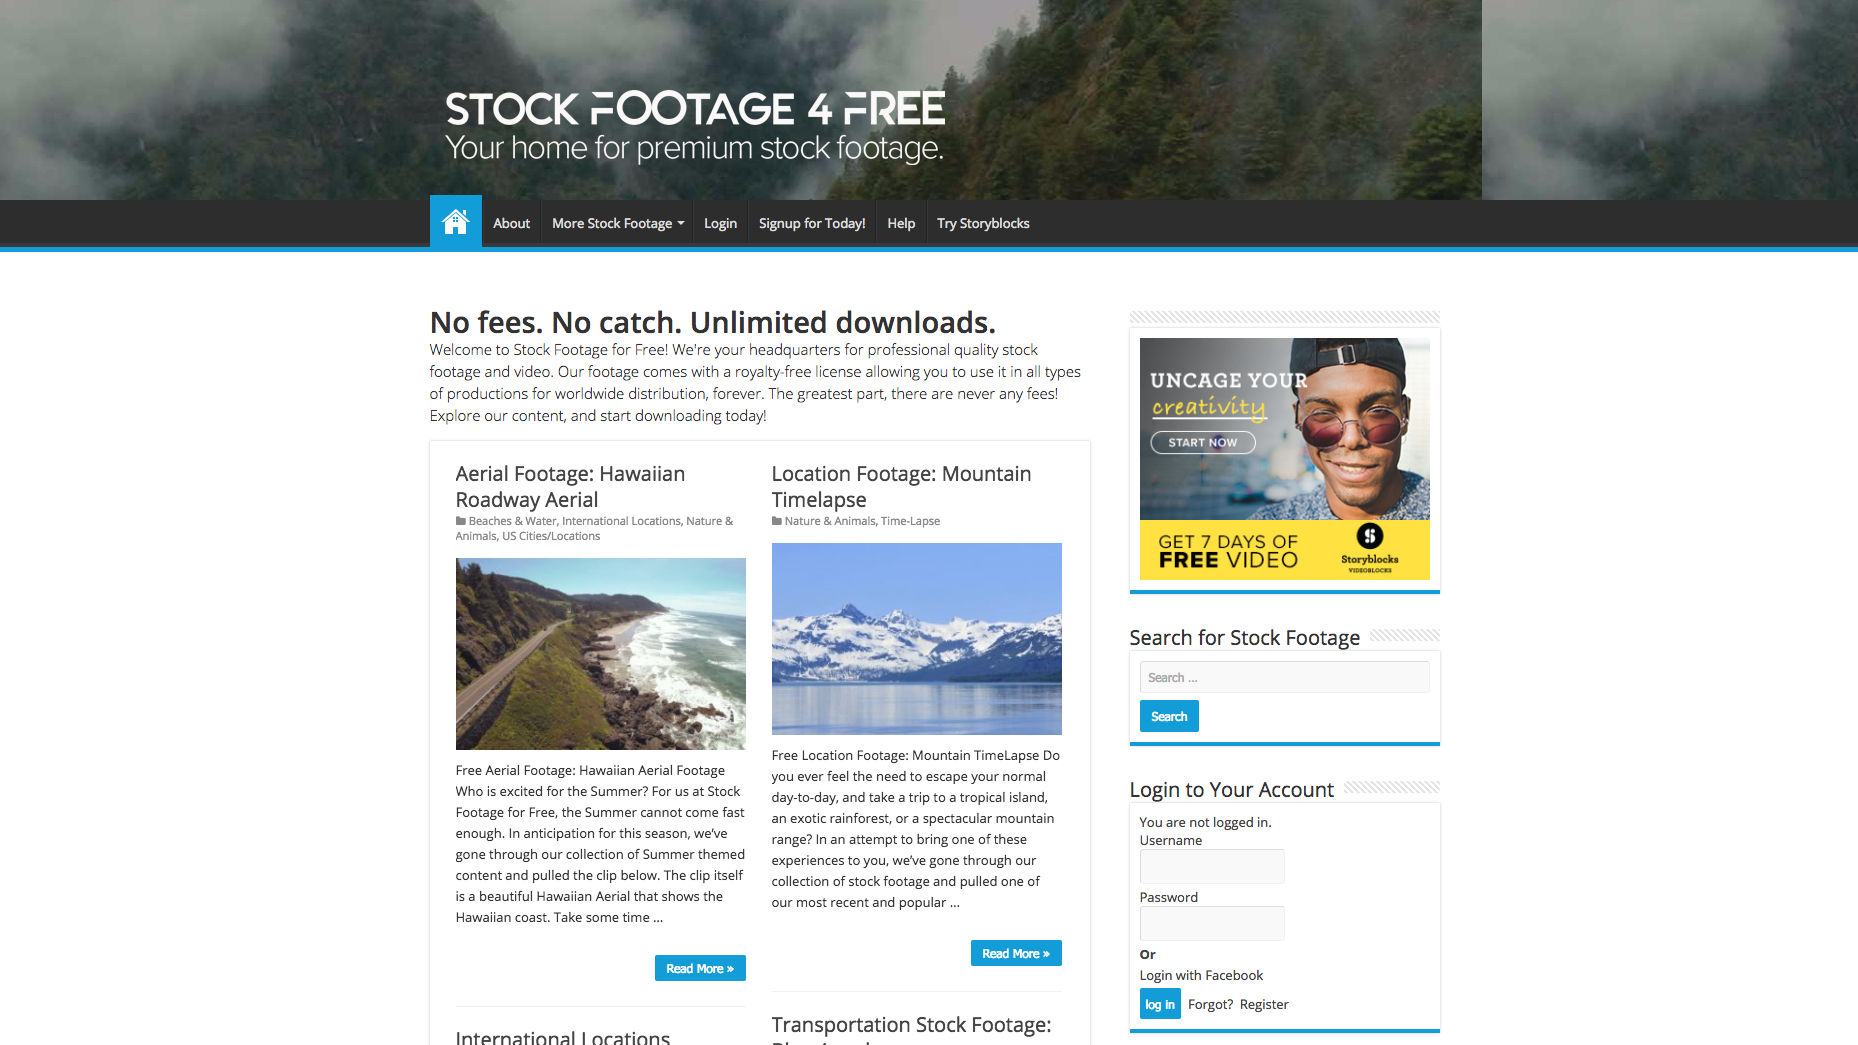 Stock Footage for Free screen grab